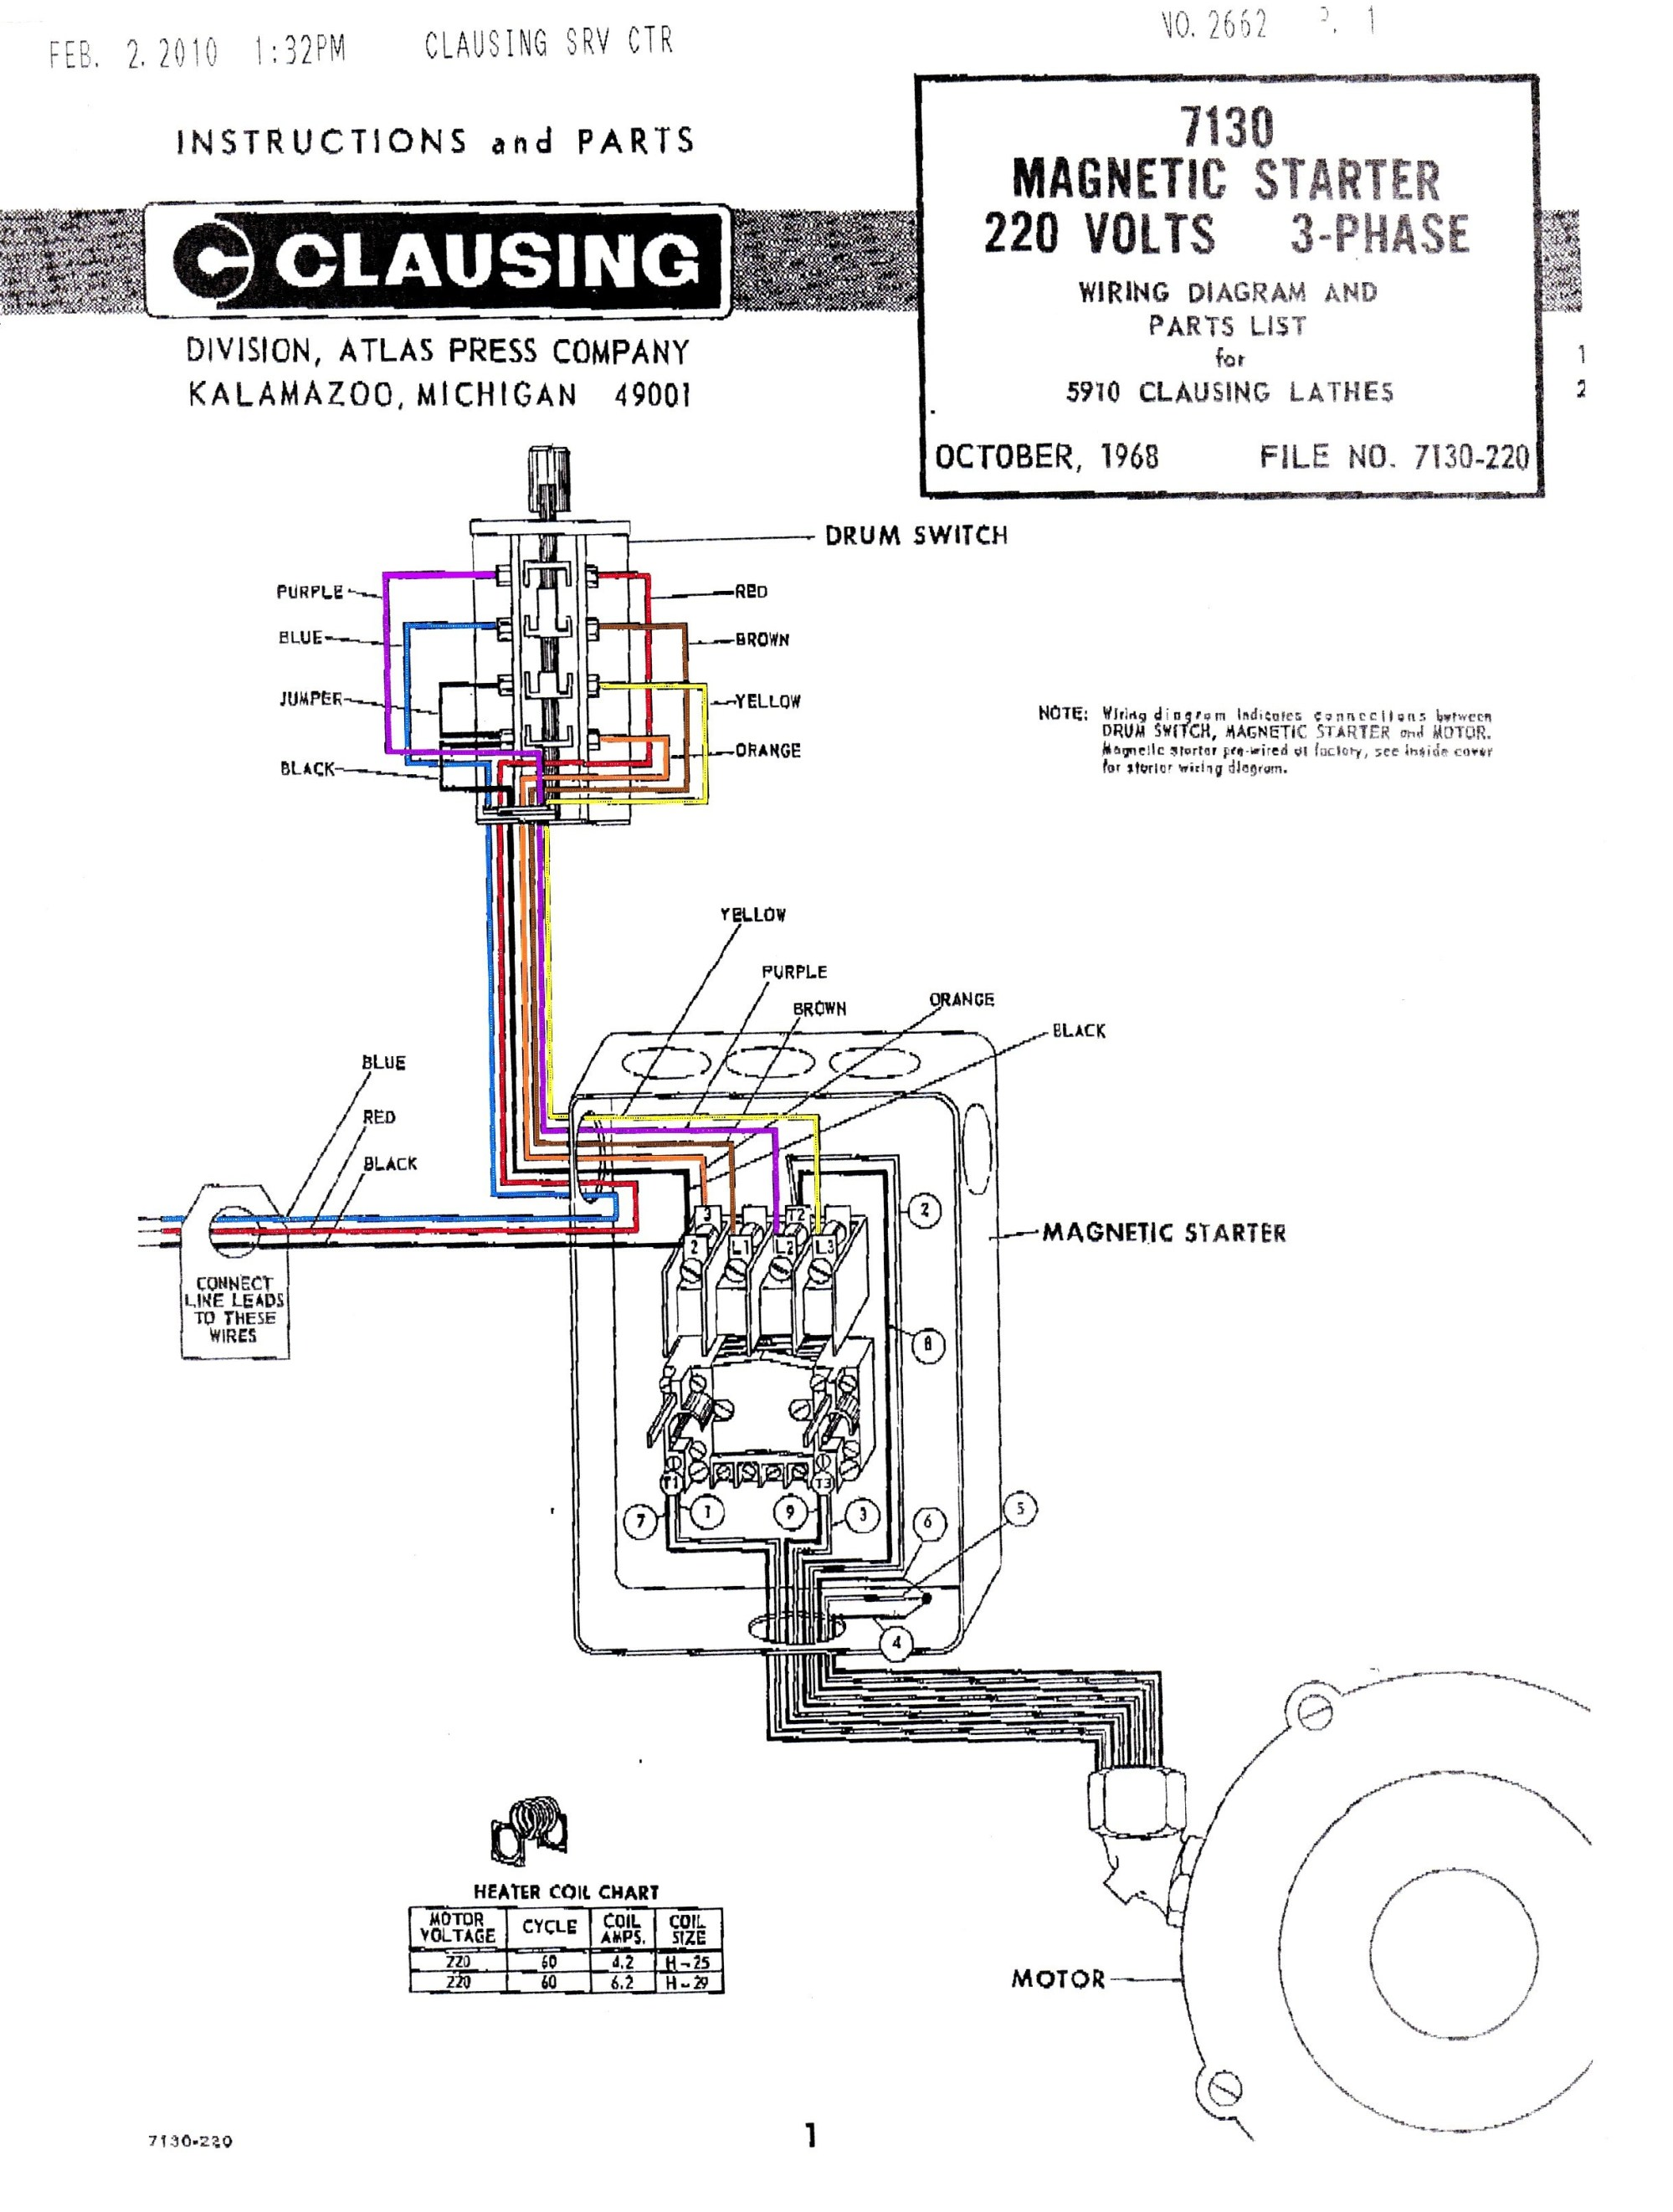 hight resolution of dry motor wiring diagram wiring diagram centre dryer motor wiring diagram frigidaire feq332 dry motor wiring diagram